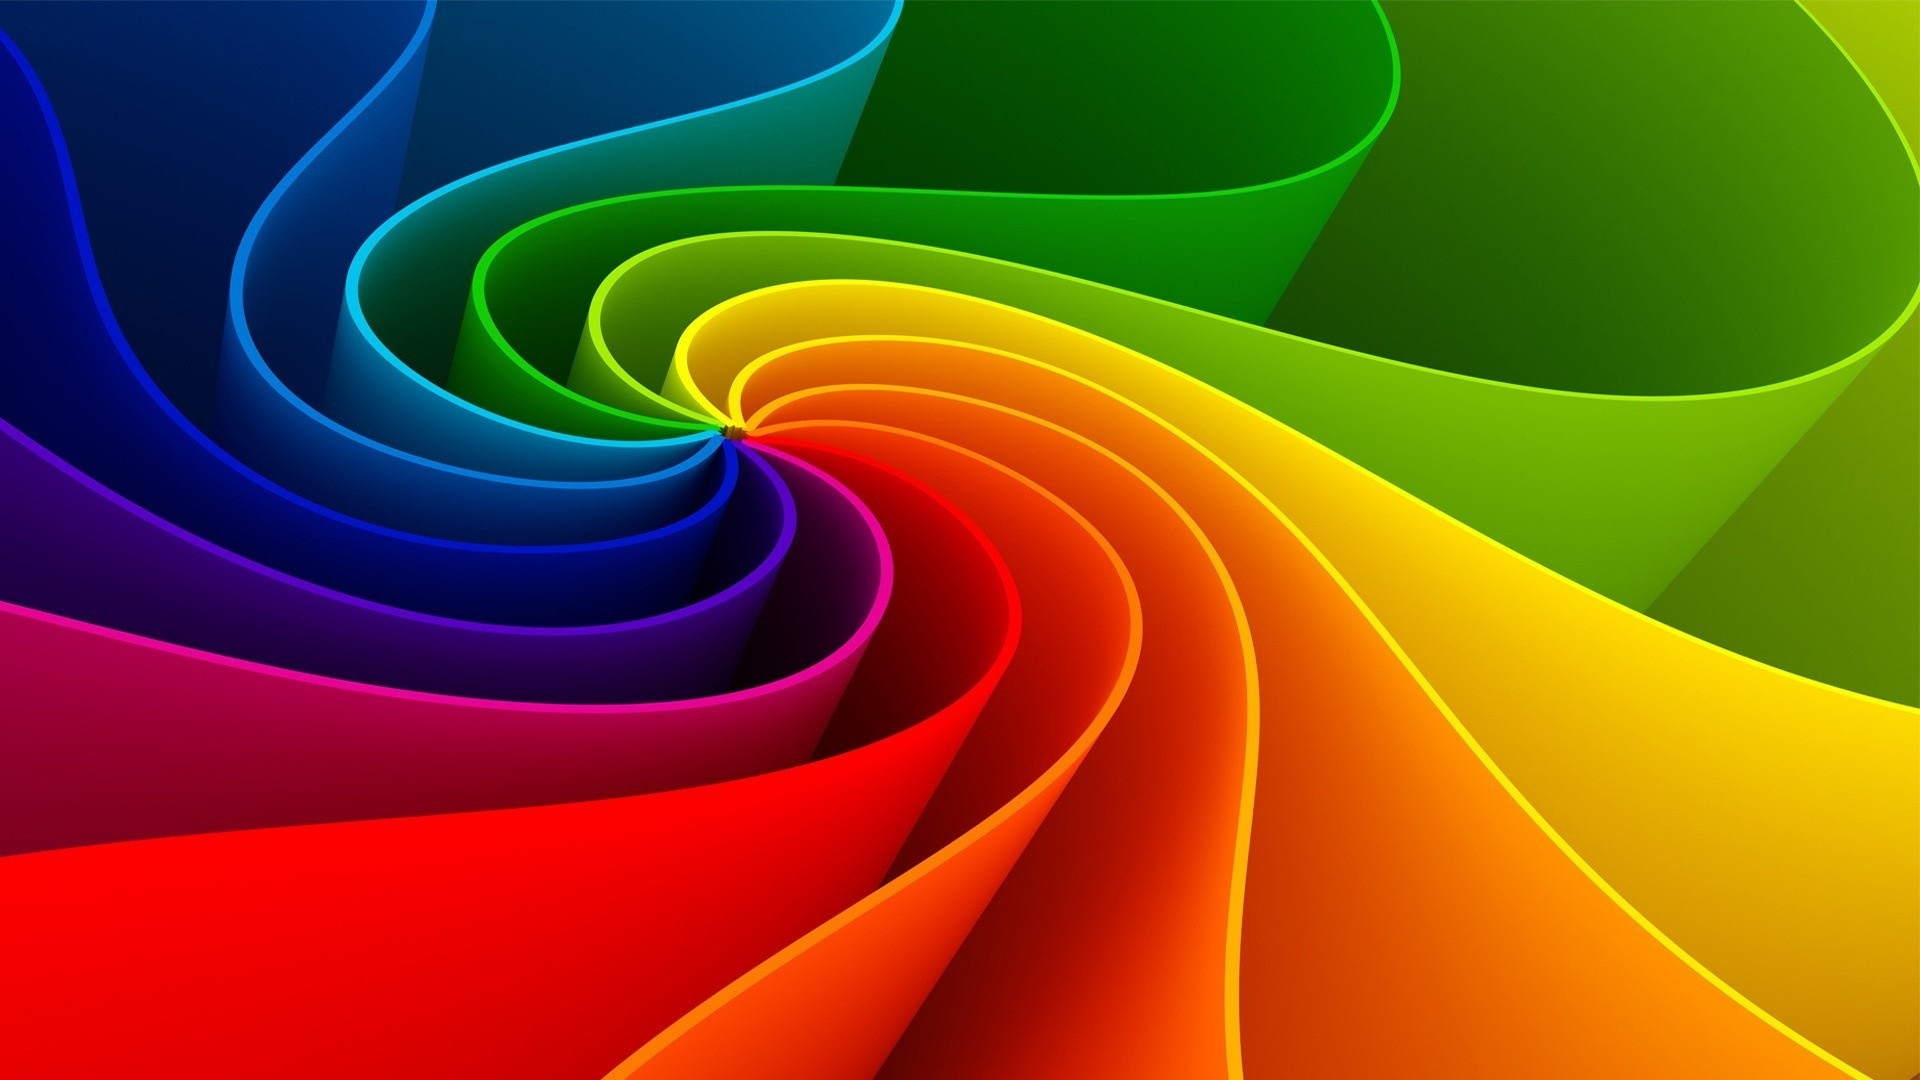 Abstract rainbow wallpapers hd wallpaper 3d abstract wallpapers